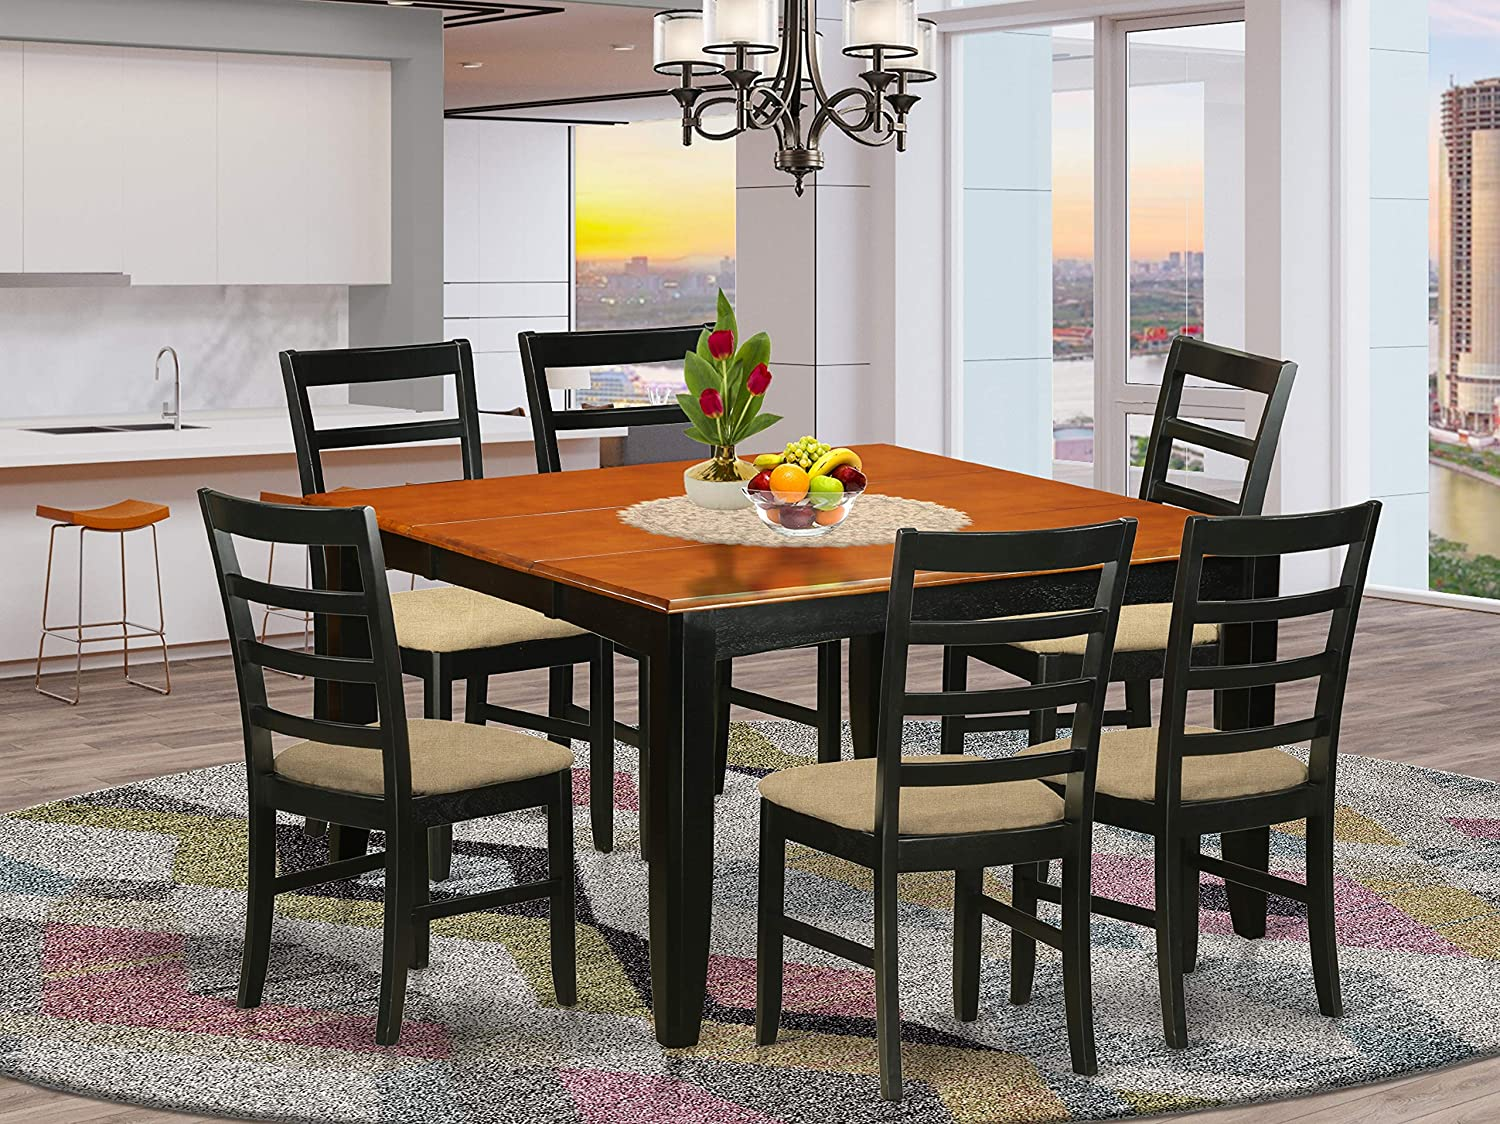 Amazon Com 7 Pc Formal Dining Room Set Square Dining Table With Leaf And 6 Dining Chairs Furniture Decor